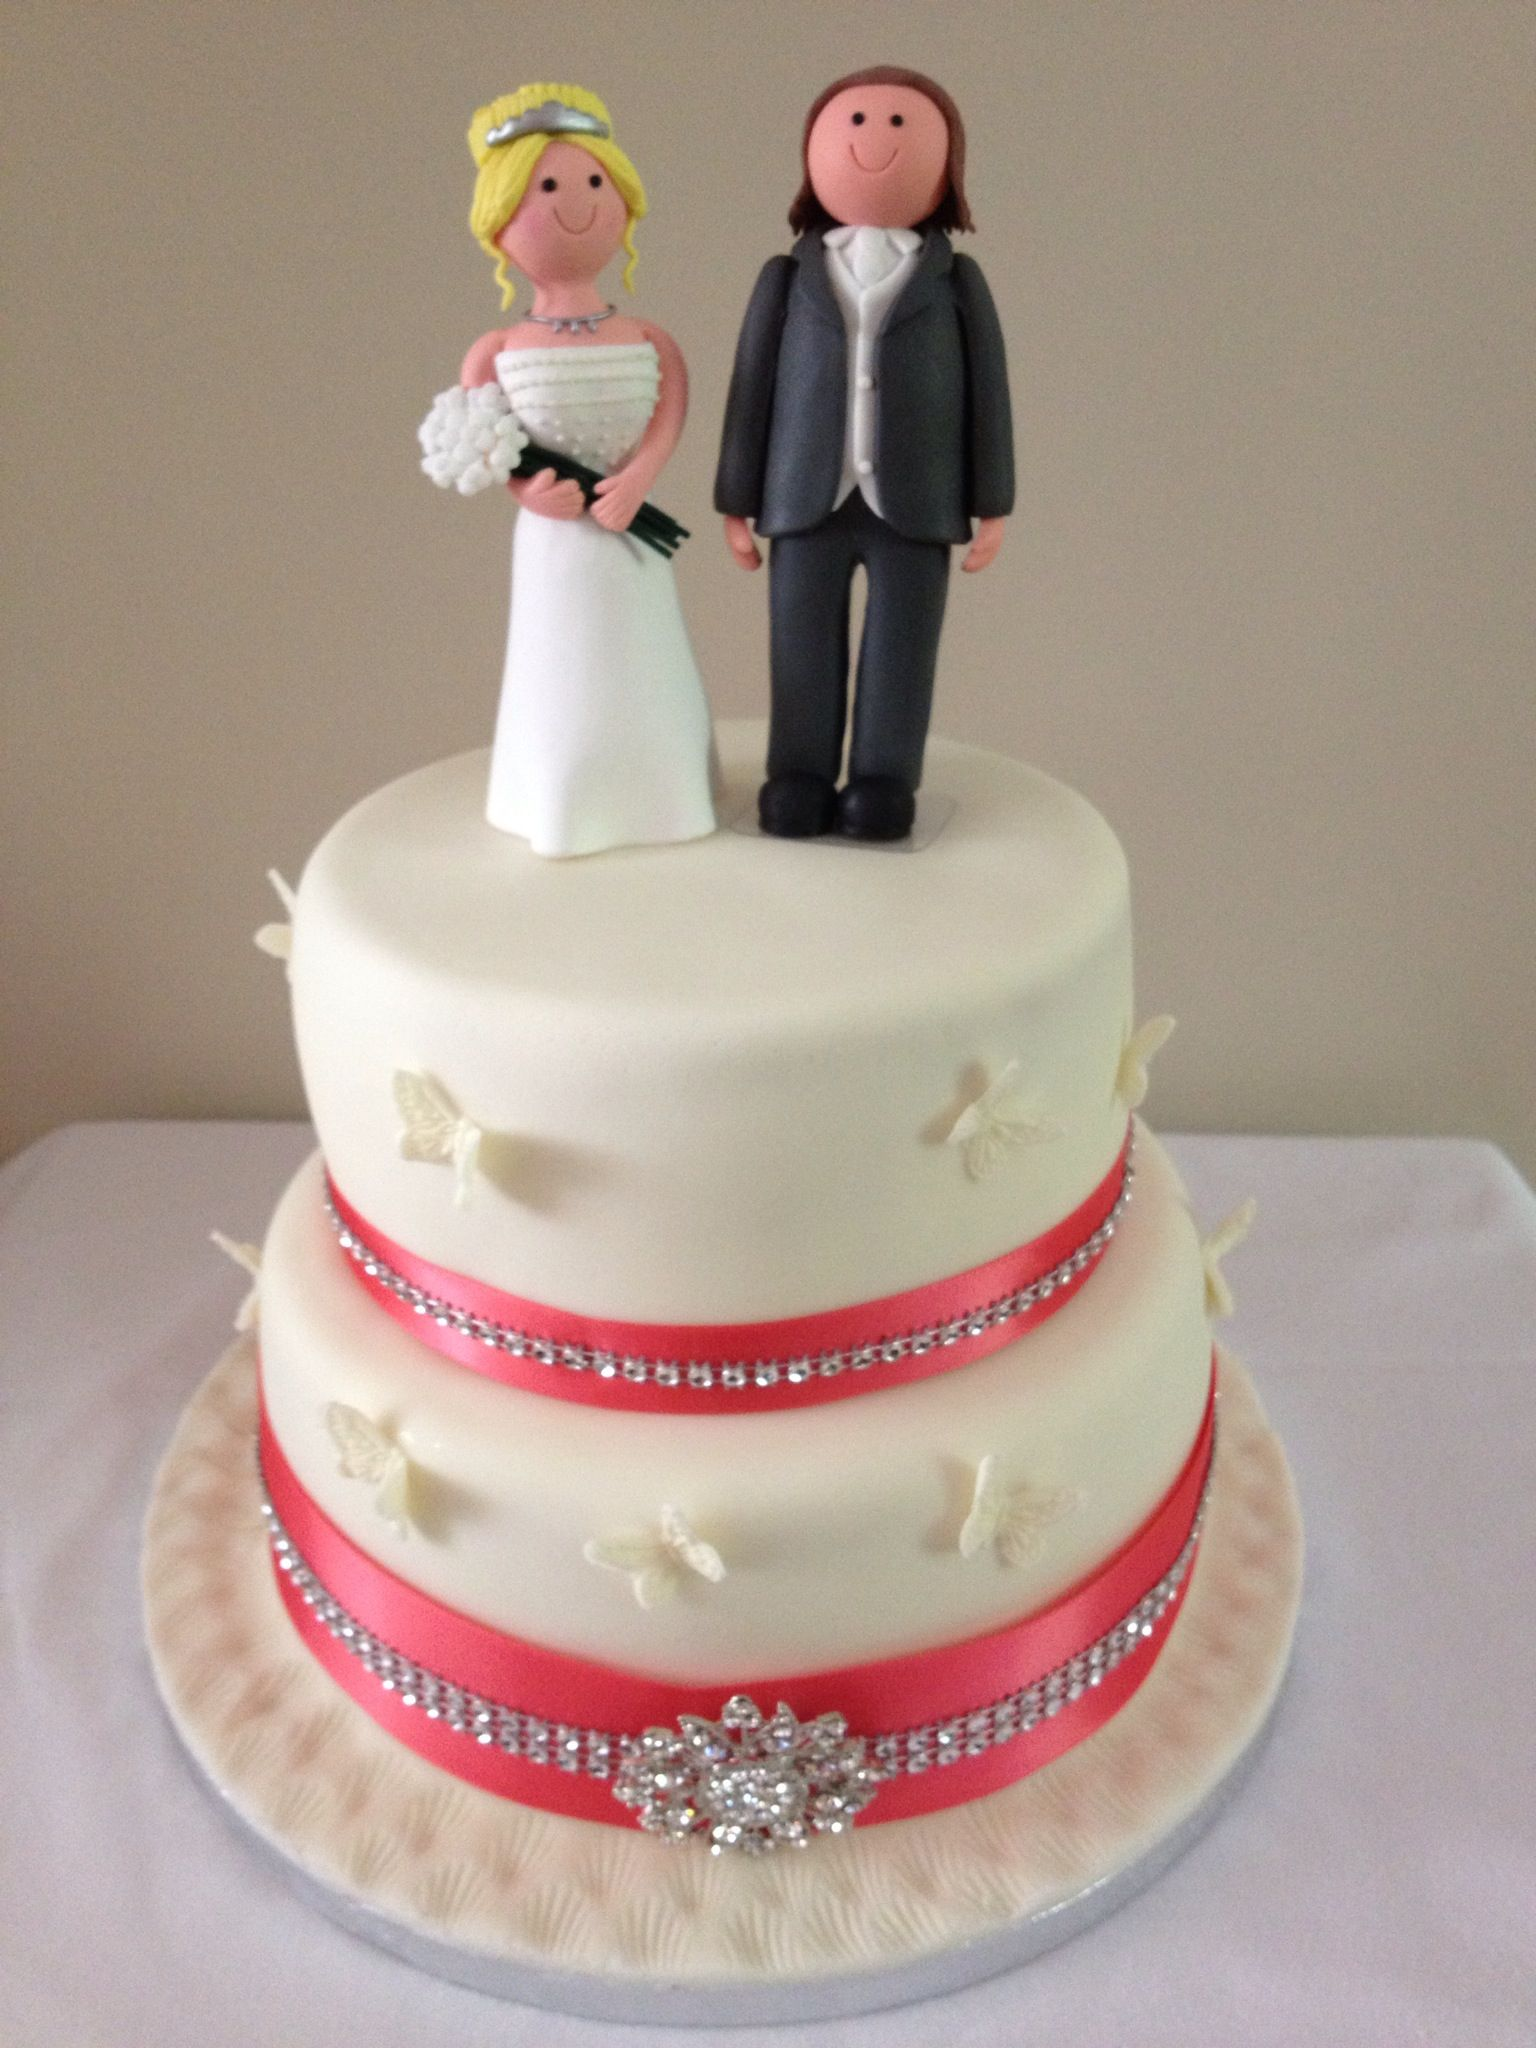 Wedding Cake My Cakes Pinterest Picture to Pin on ... - photo#47